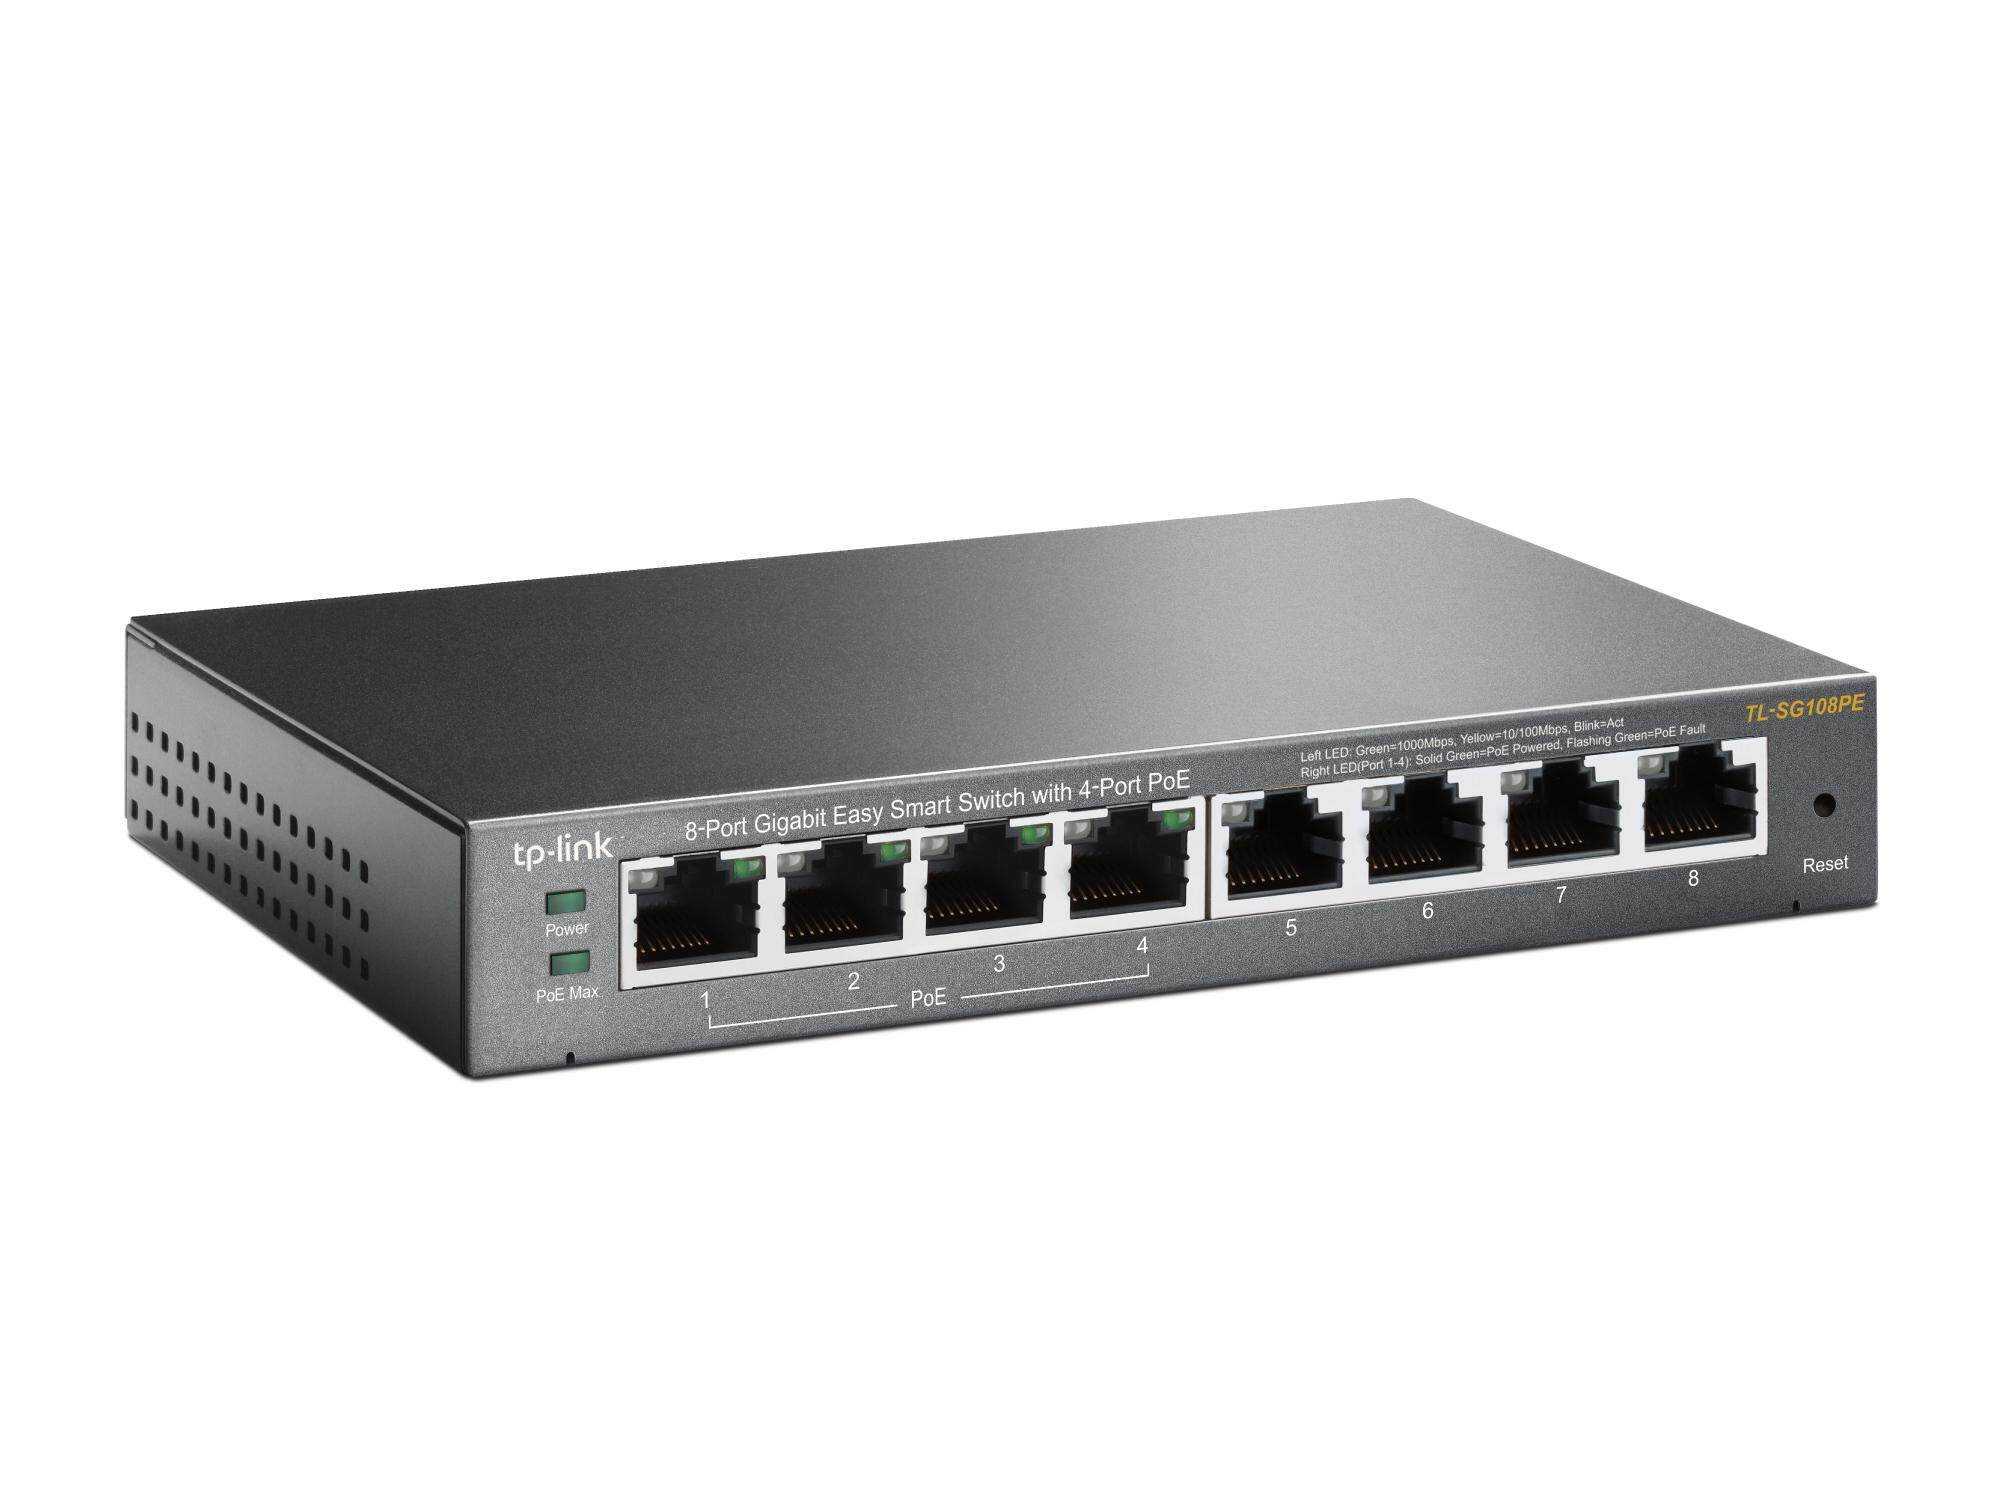 READY STOCK-8-Port Gigabit Easy Smart Switch with 4-Port PoE TL-SG108PE